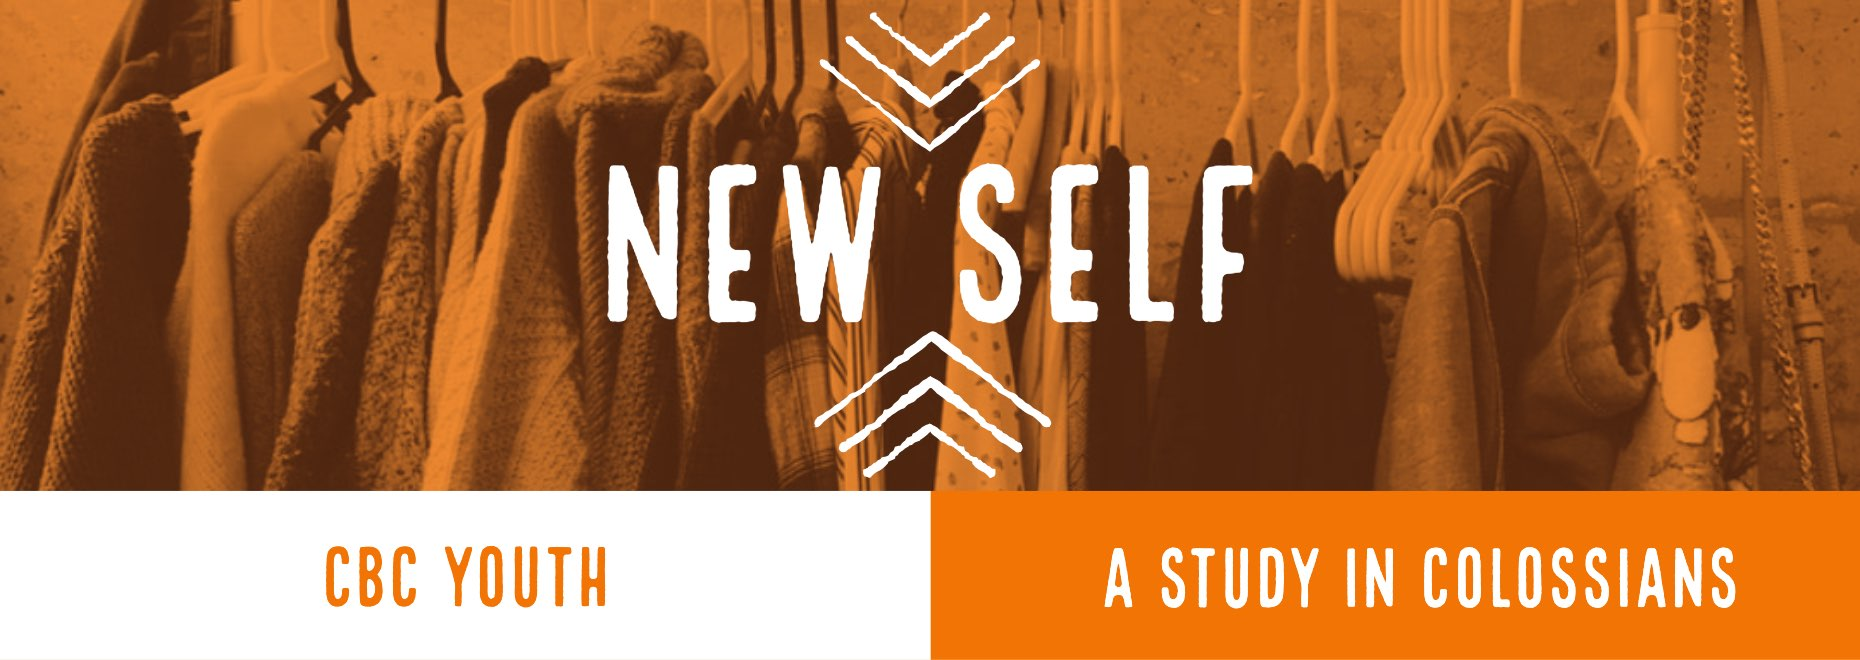 New Self Series CBC Youth